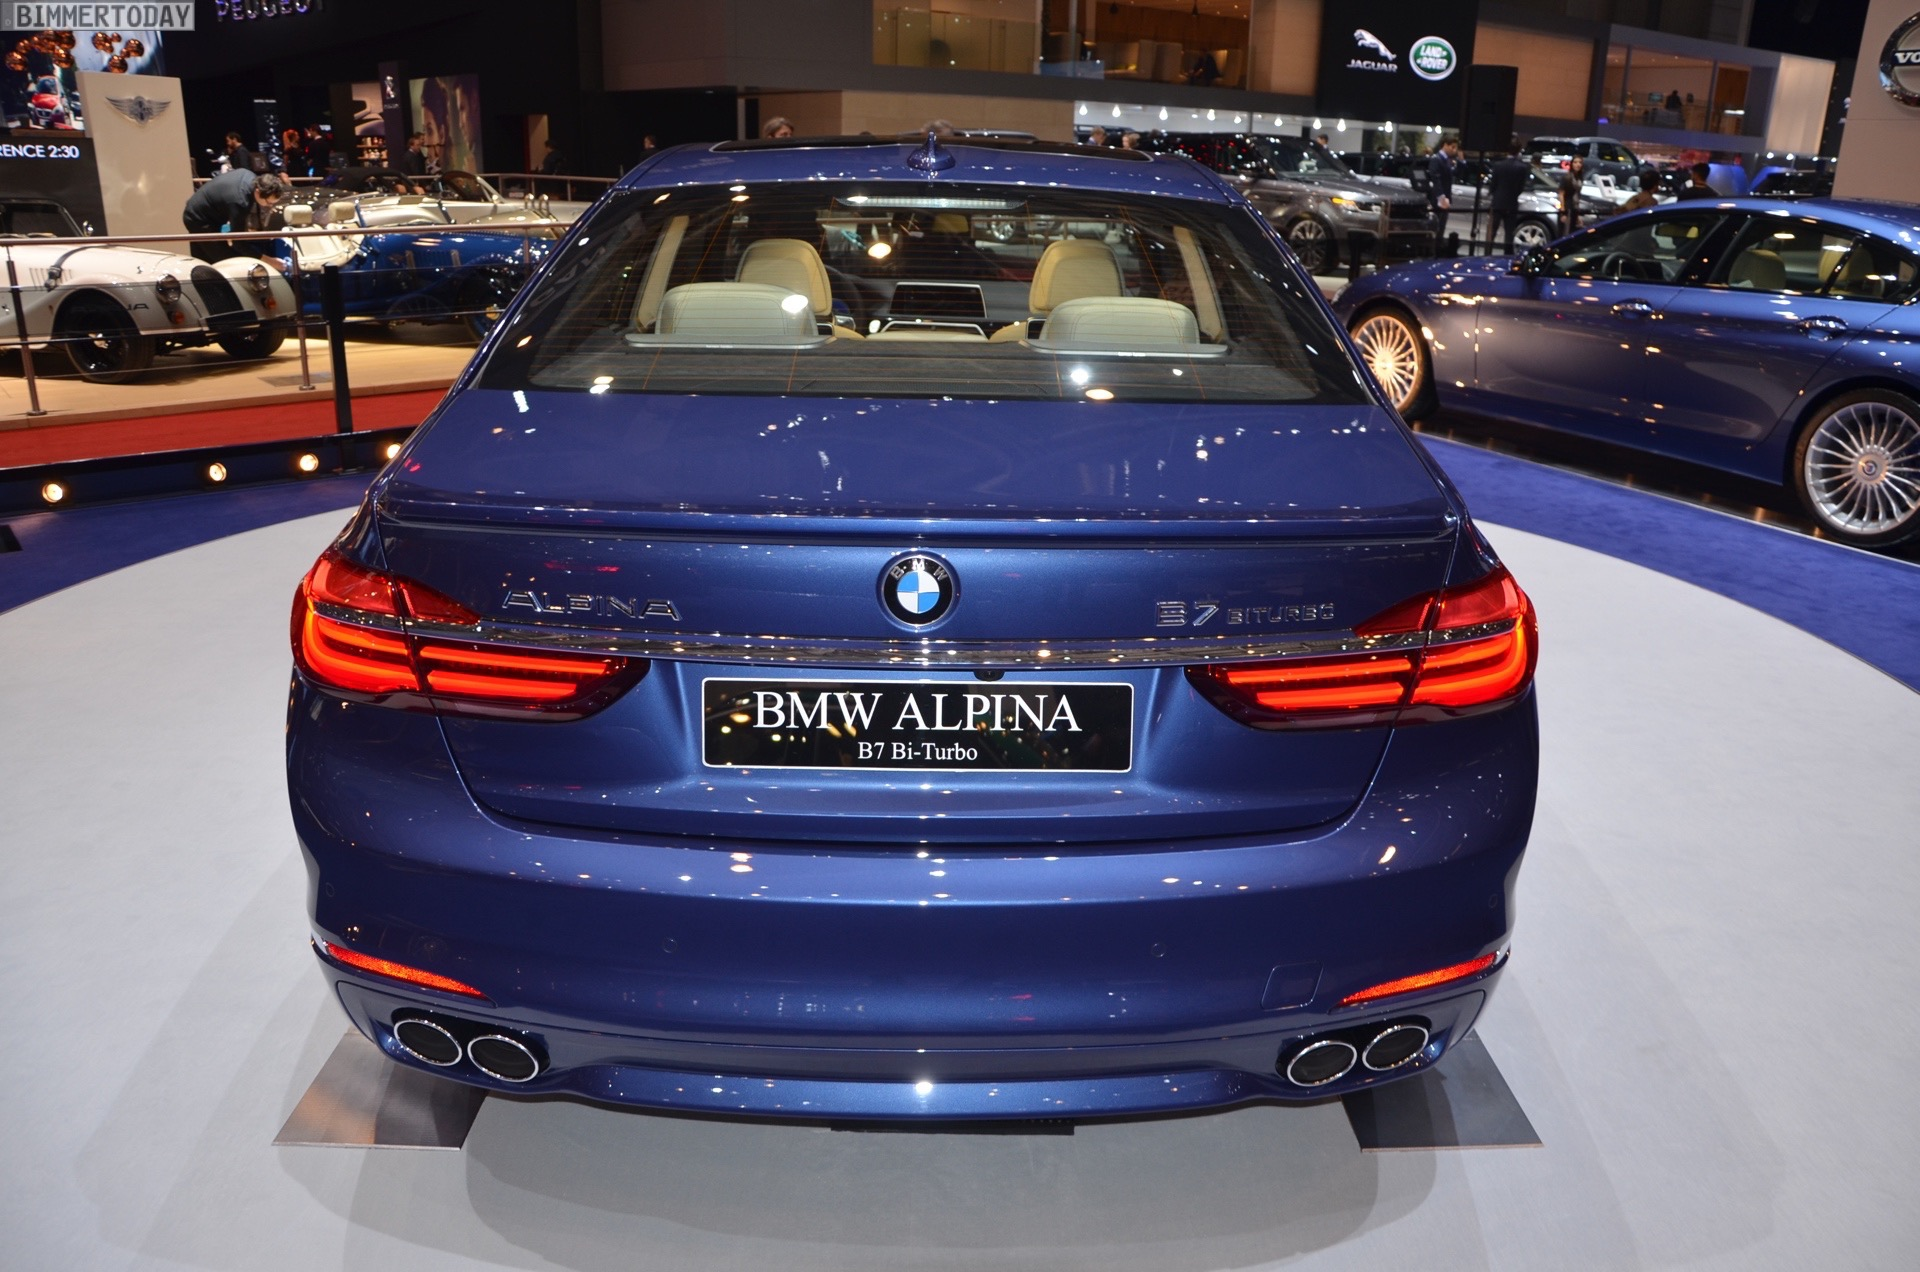 xdrive speed cars price top bmw alpina